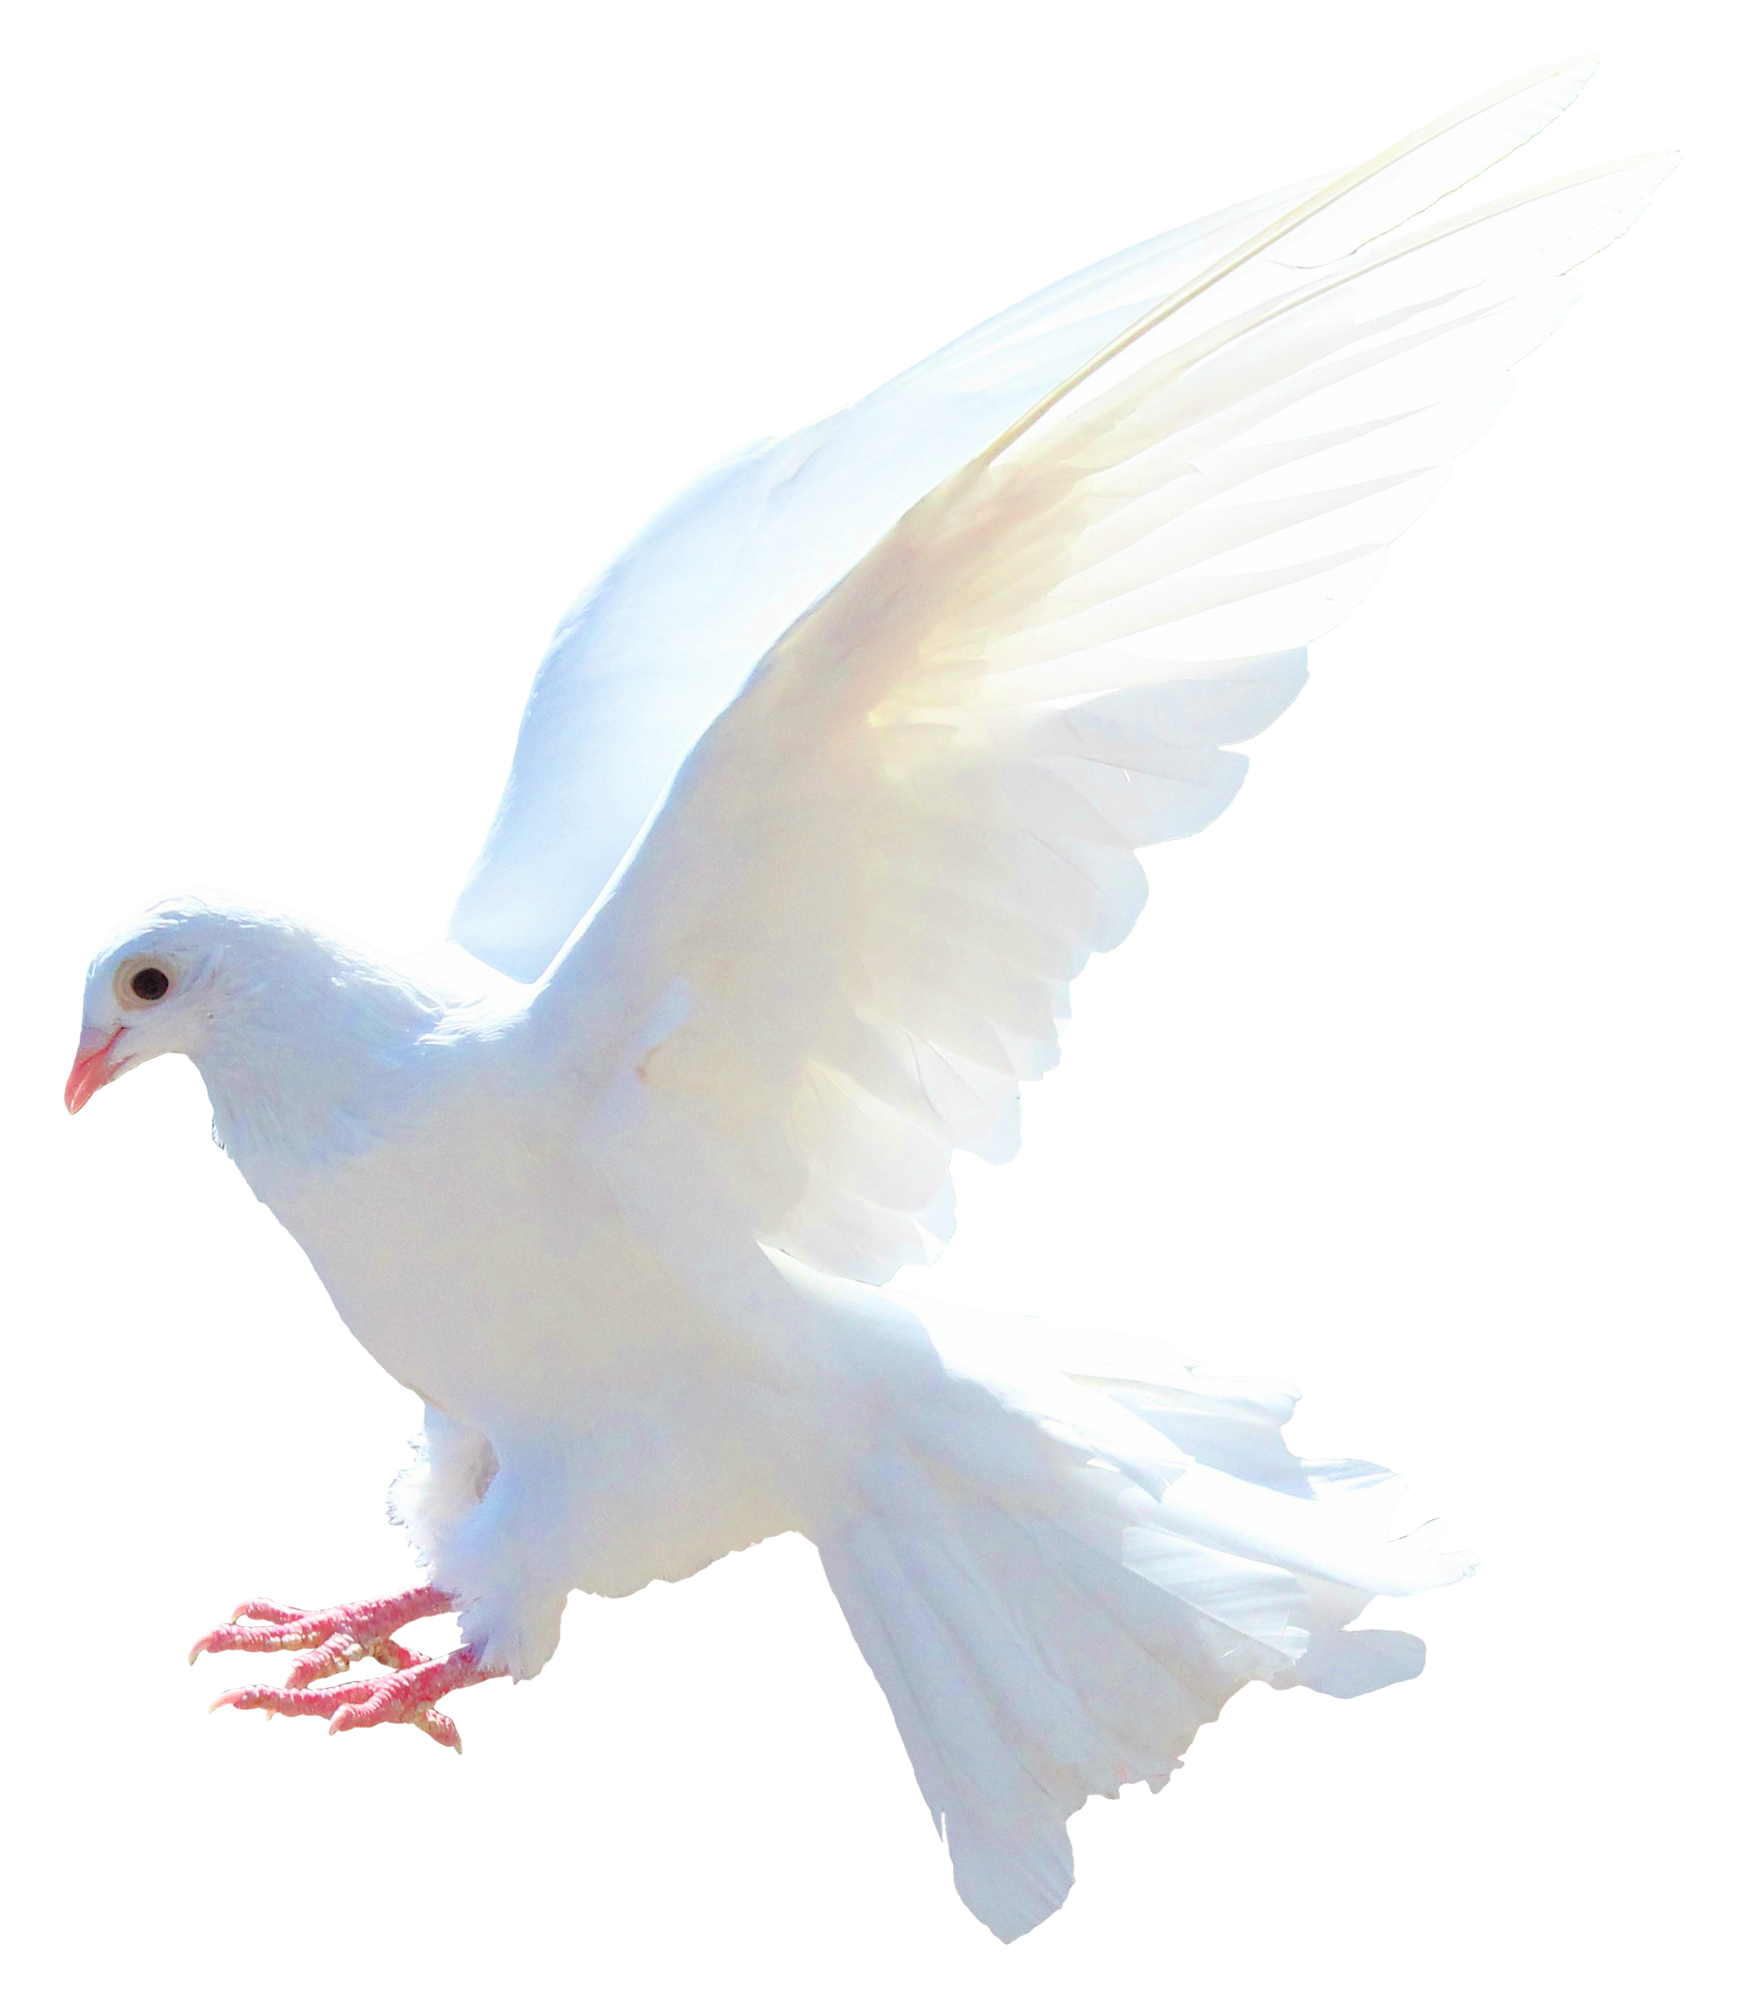 Image purepng free transparent. Dove png graphic free download